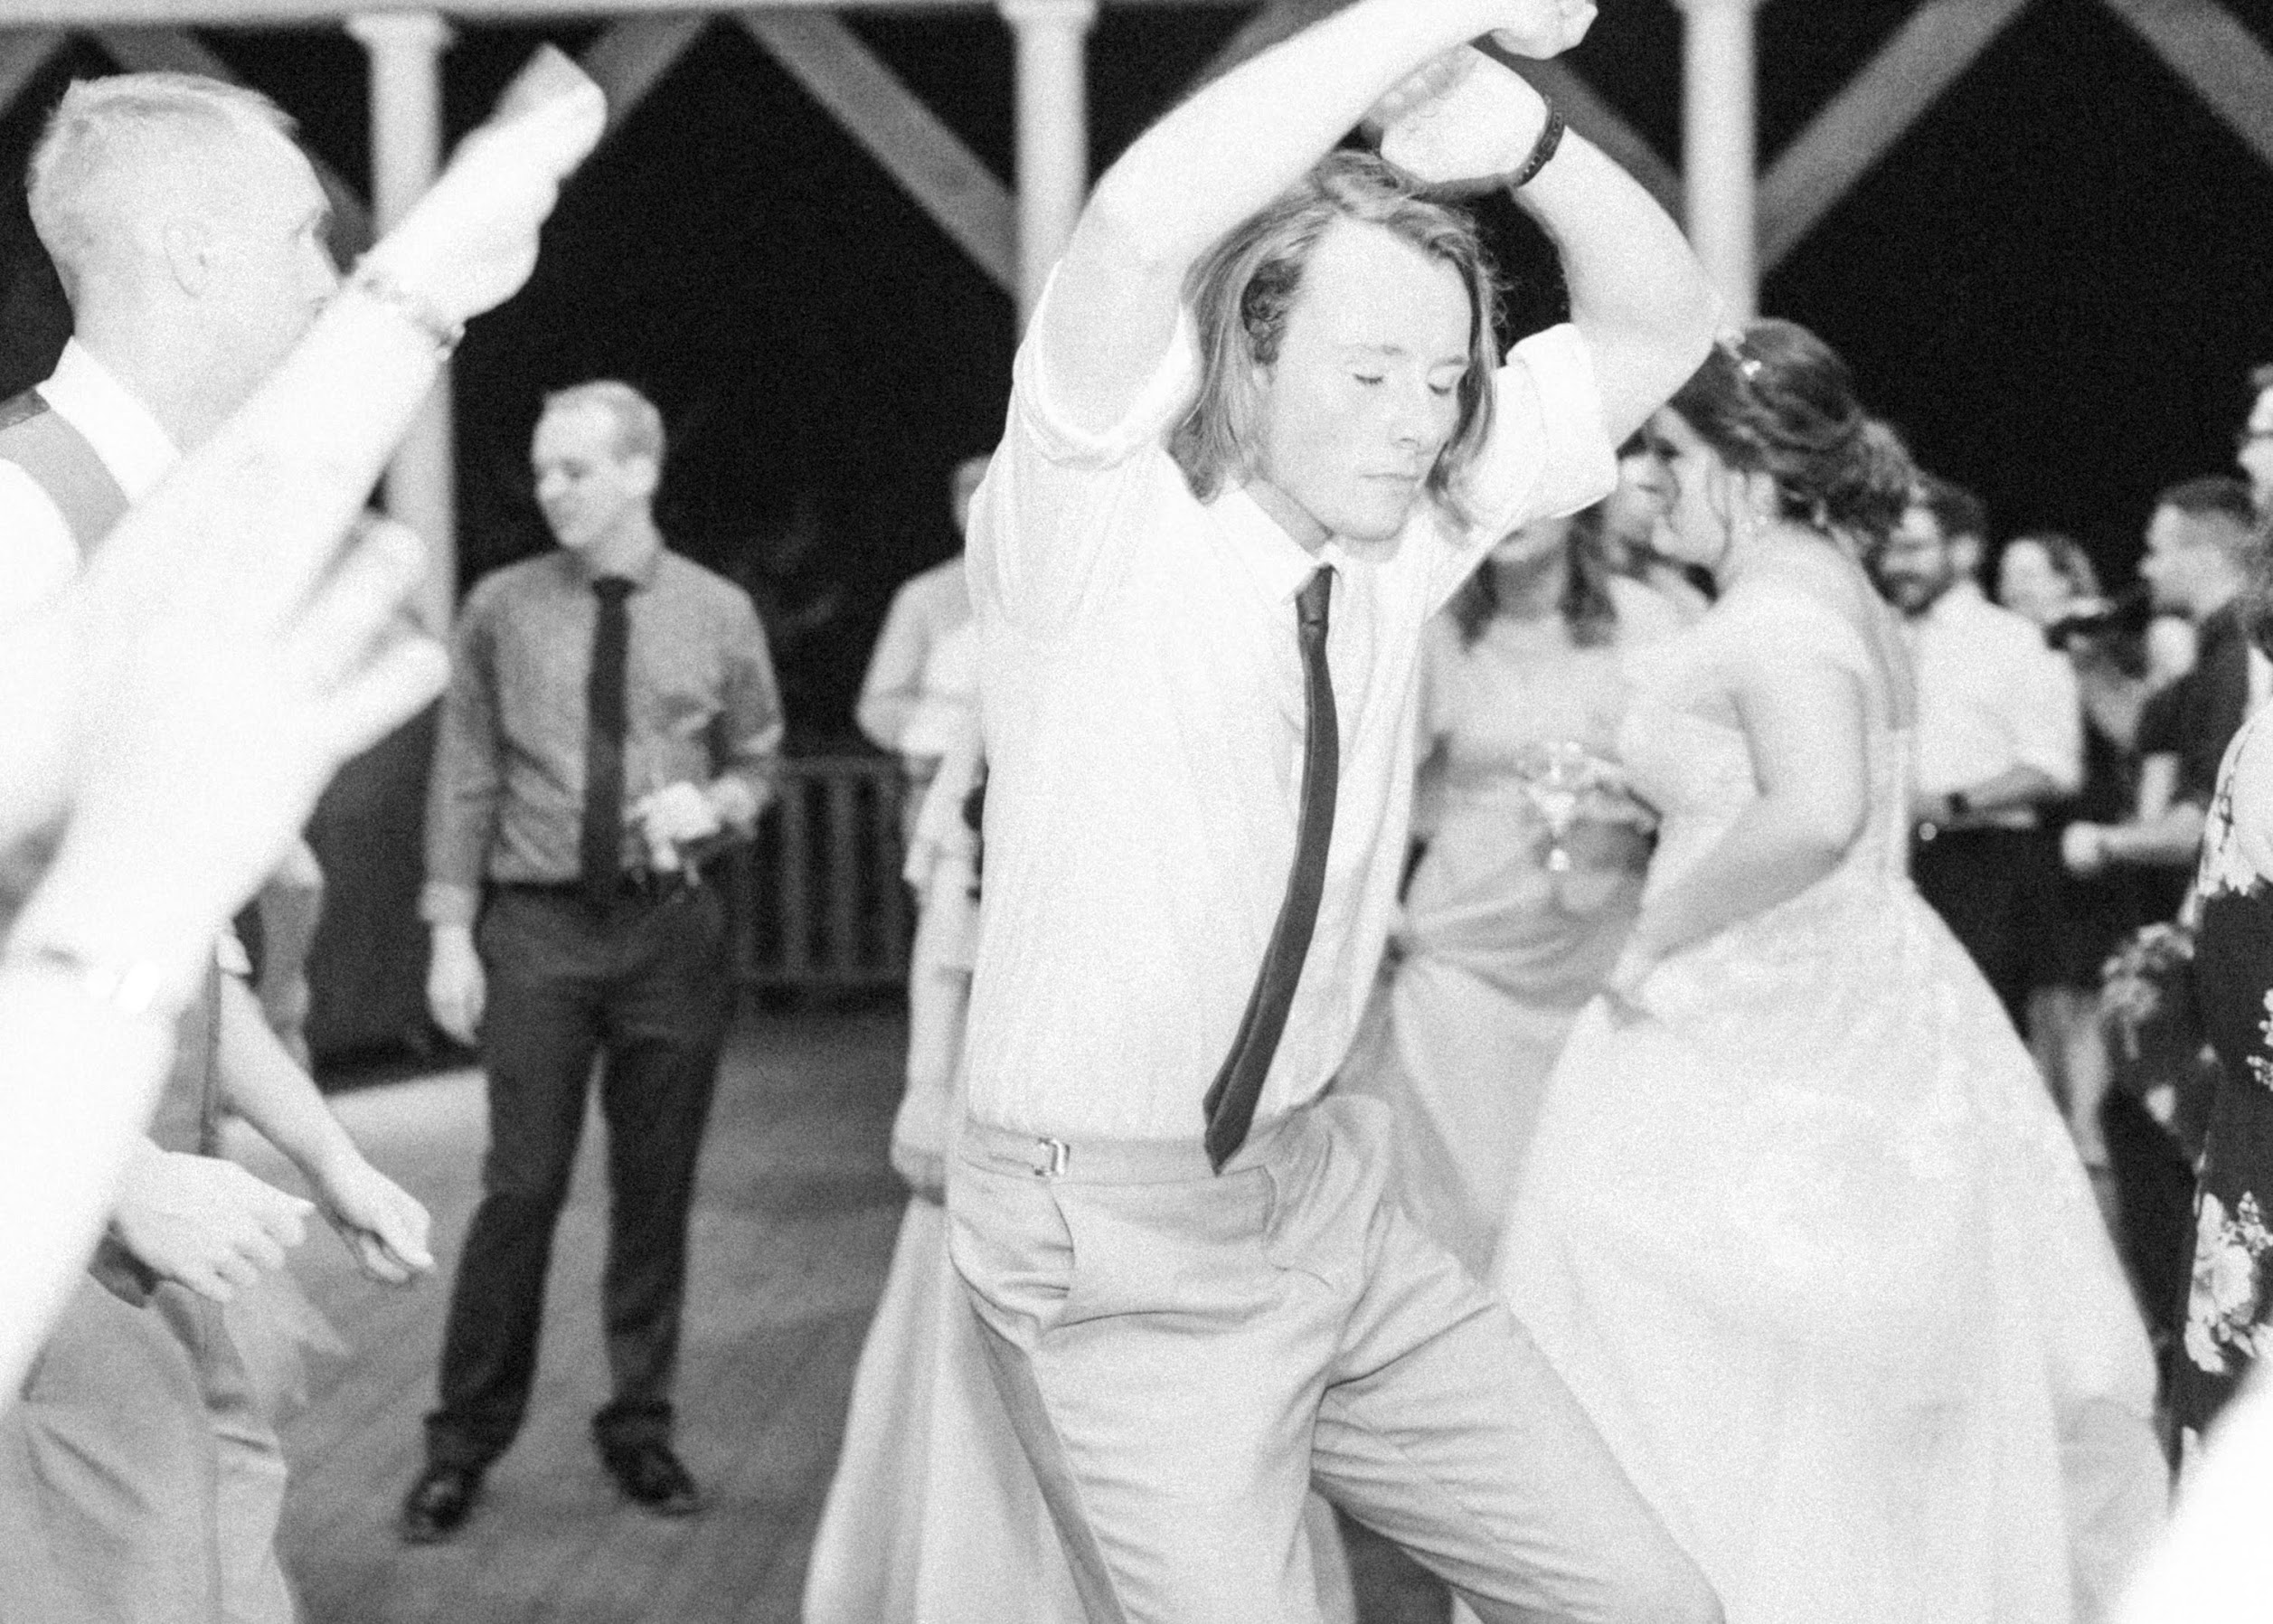 Gus dancing at Mike's wedding